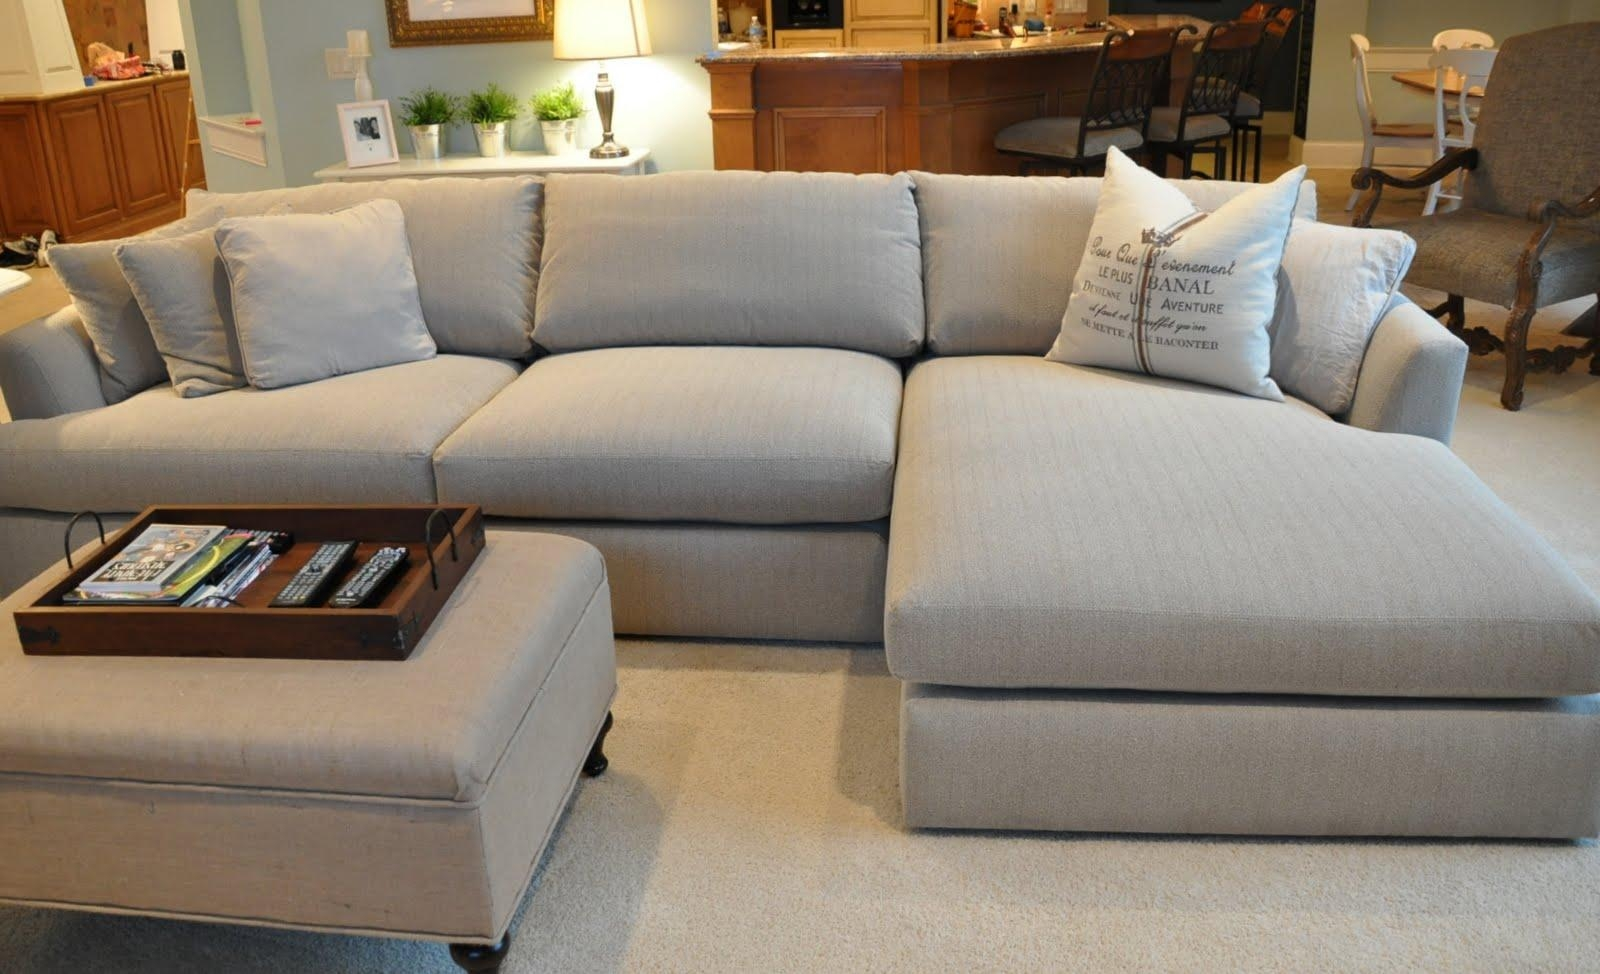 How To Buying Deep Sectional Sofa — Home Design Stylinghome Design Inside Comfy Sectional Sofa (Image 15 of 15)